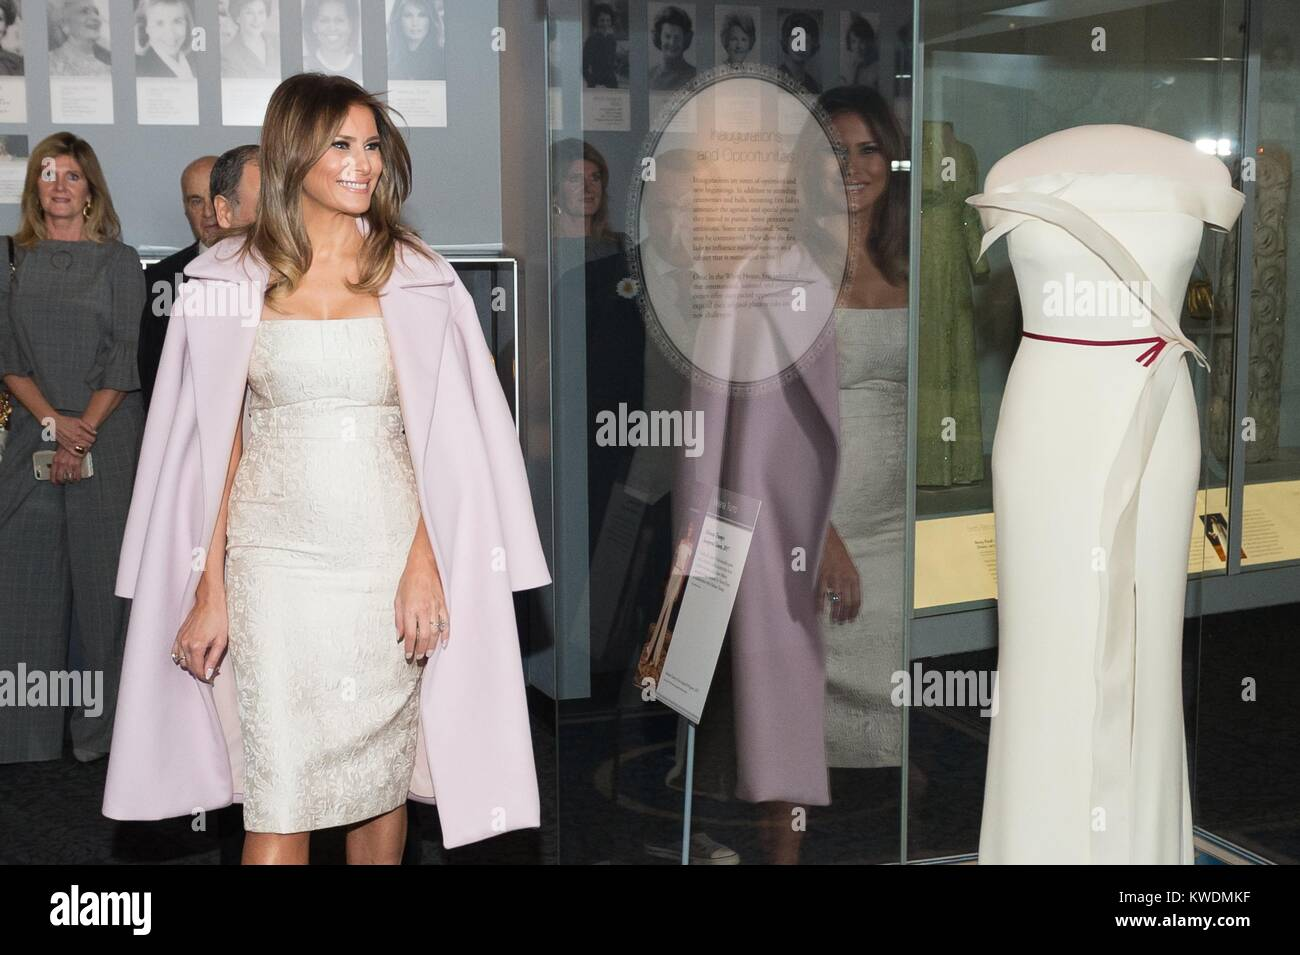 First Lady Melania Trump at the presentation of her inaugural gown ...